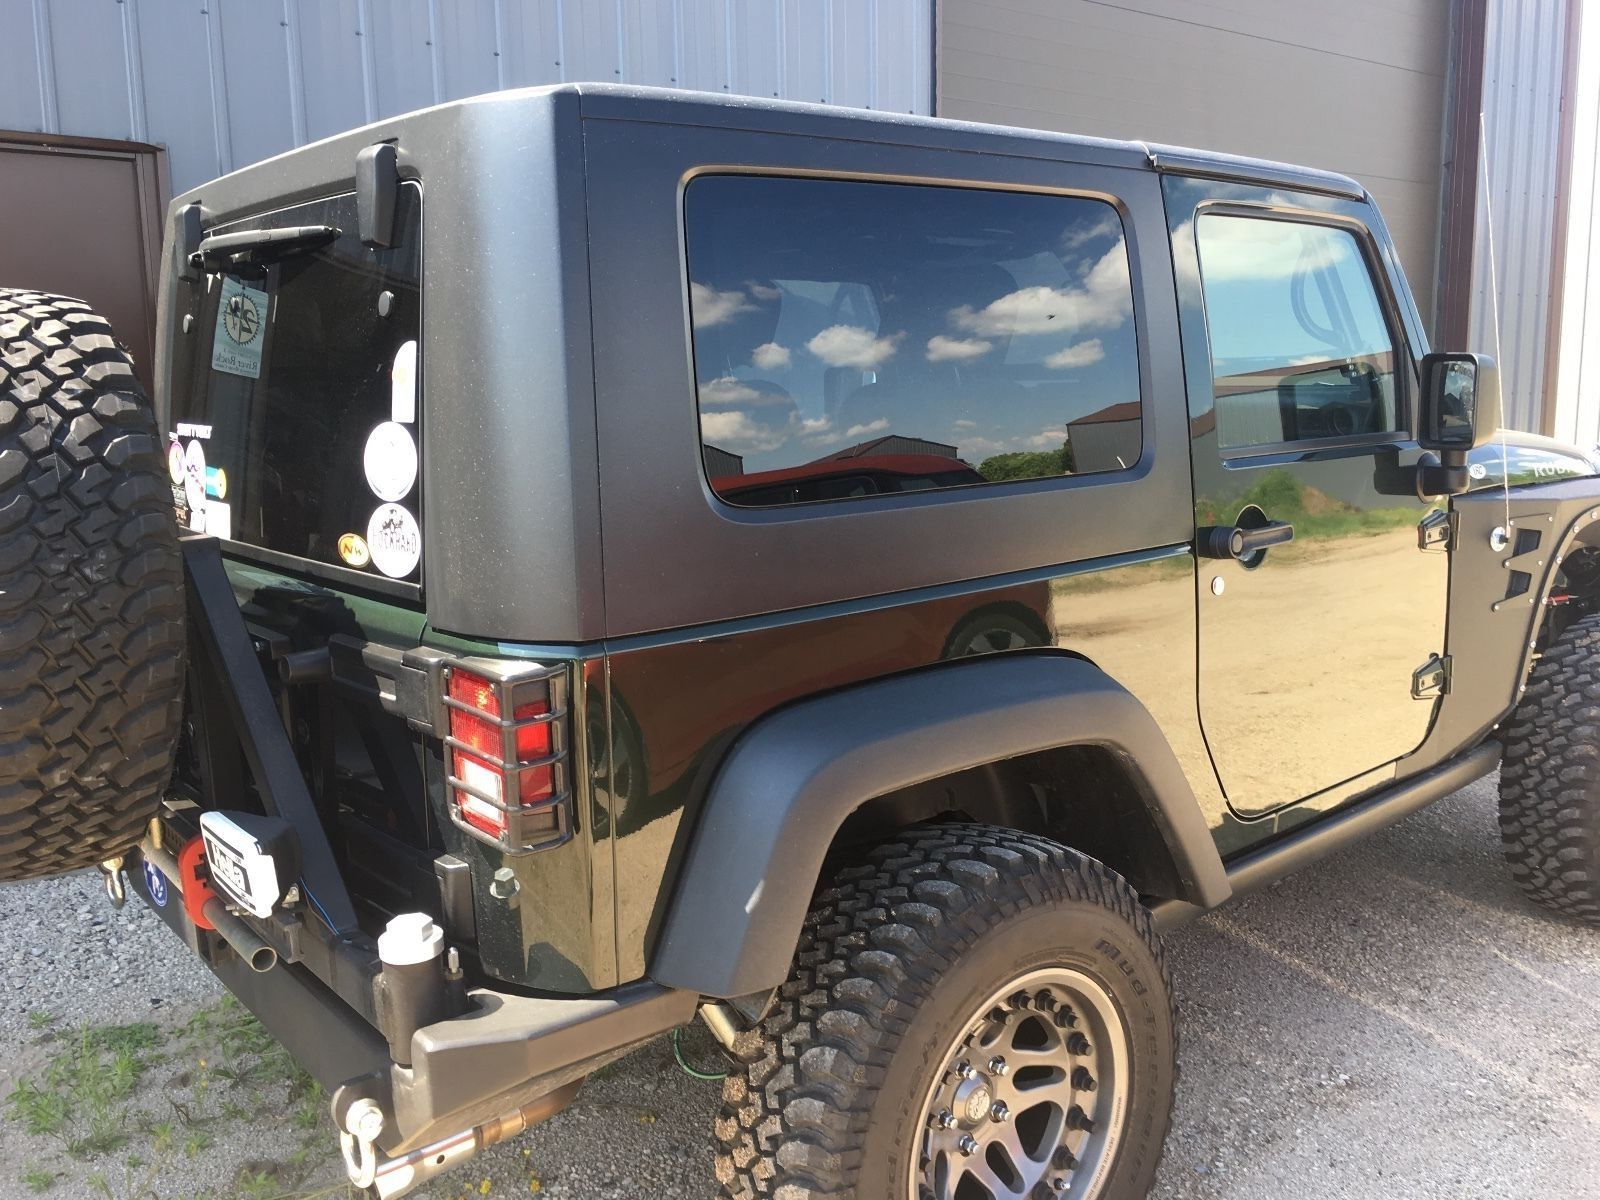 Beautiful EBay: 2010 Jeep Wrangler RUBICON 2010 JK Rubicon With A Lot Of Cool Add